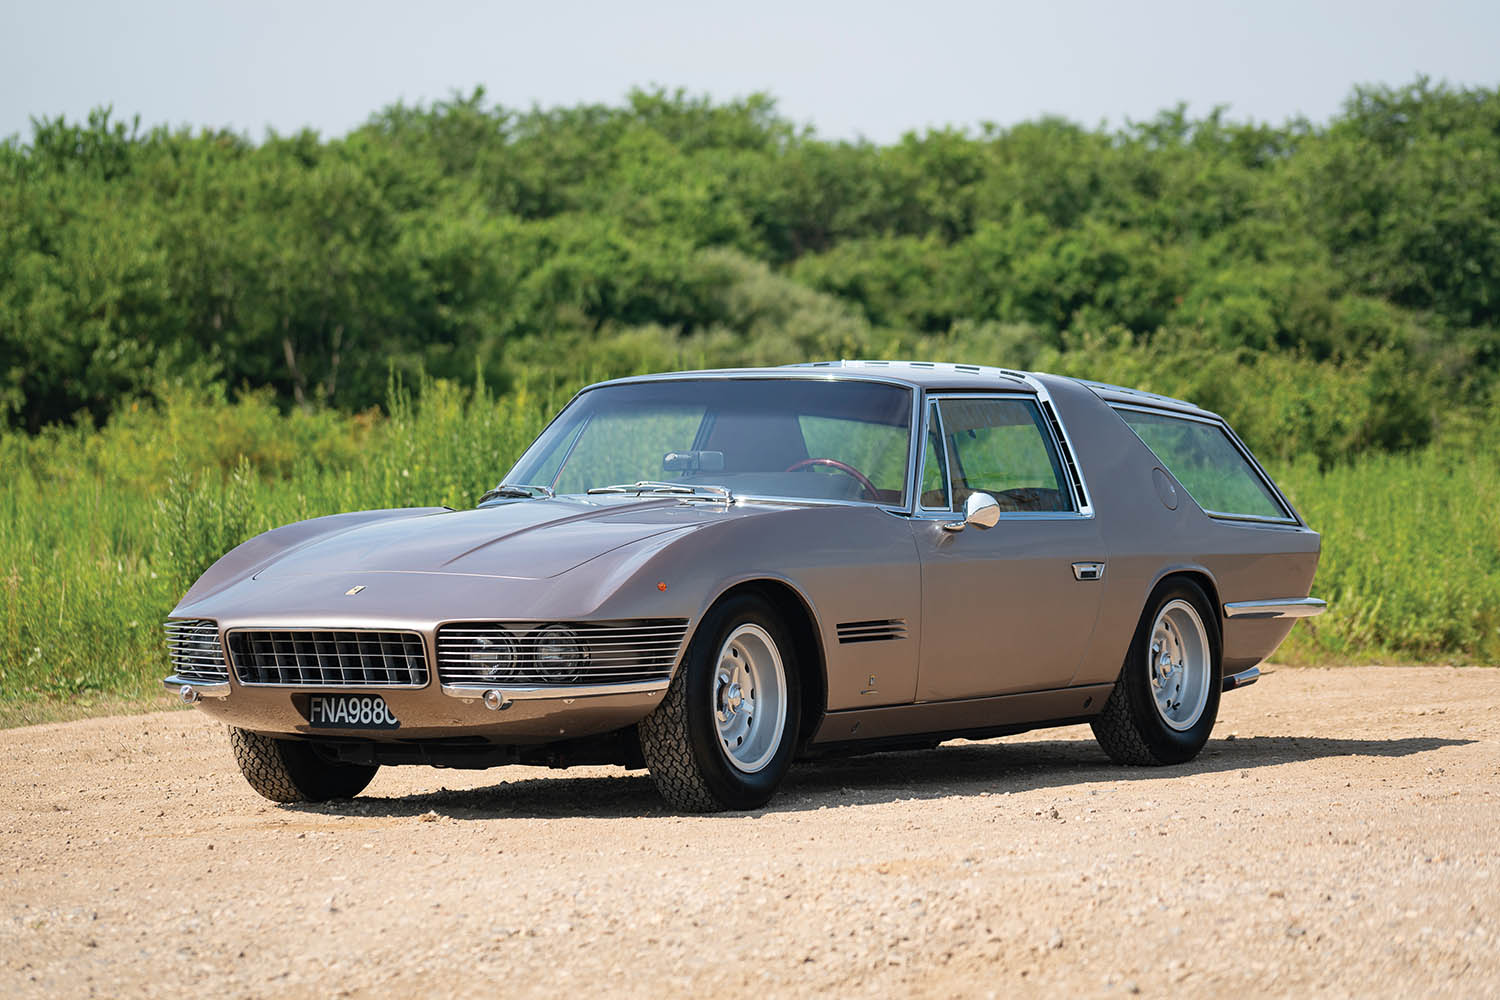 1965-Ferrari-330-GT-2-2-Shooting-Brake-by-Vignale_25.jpg